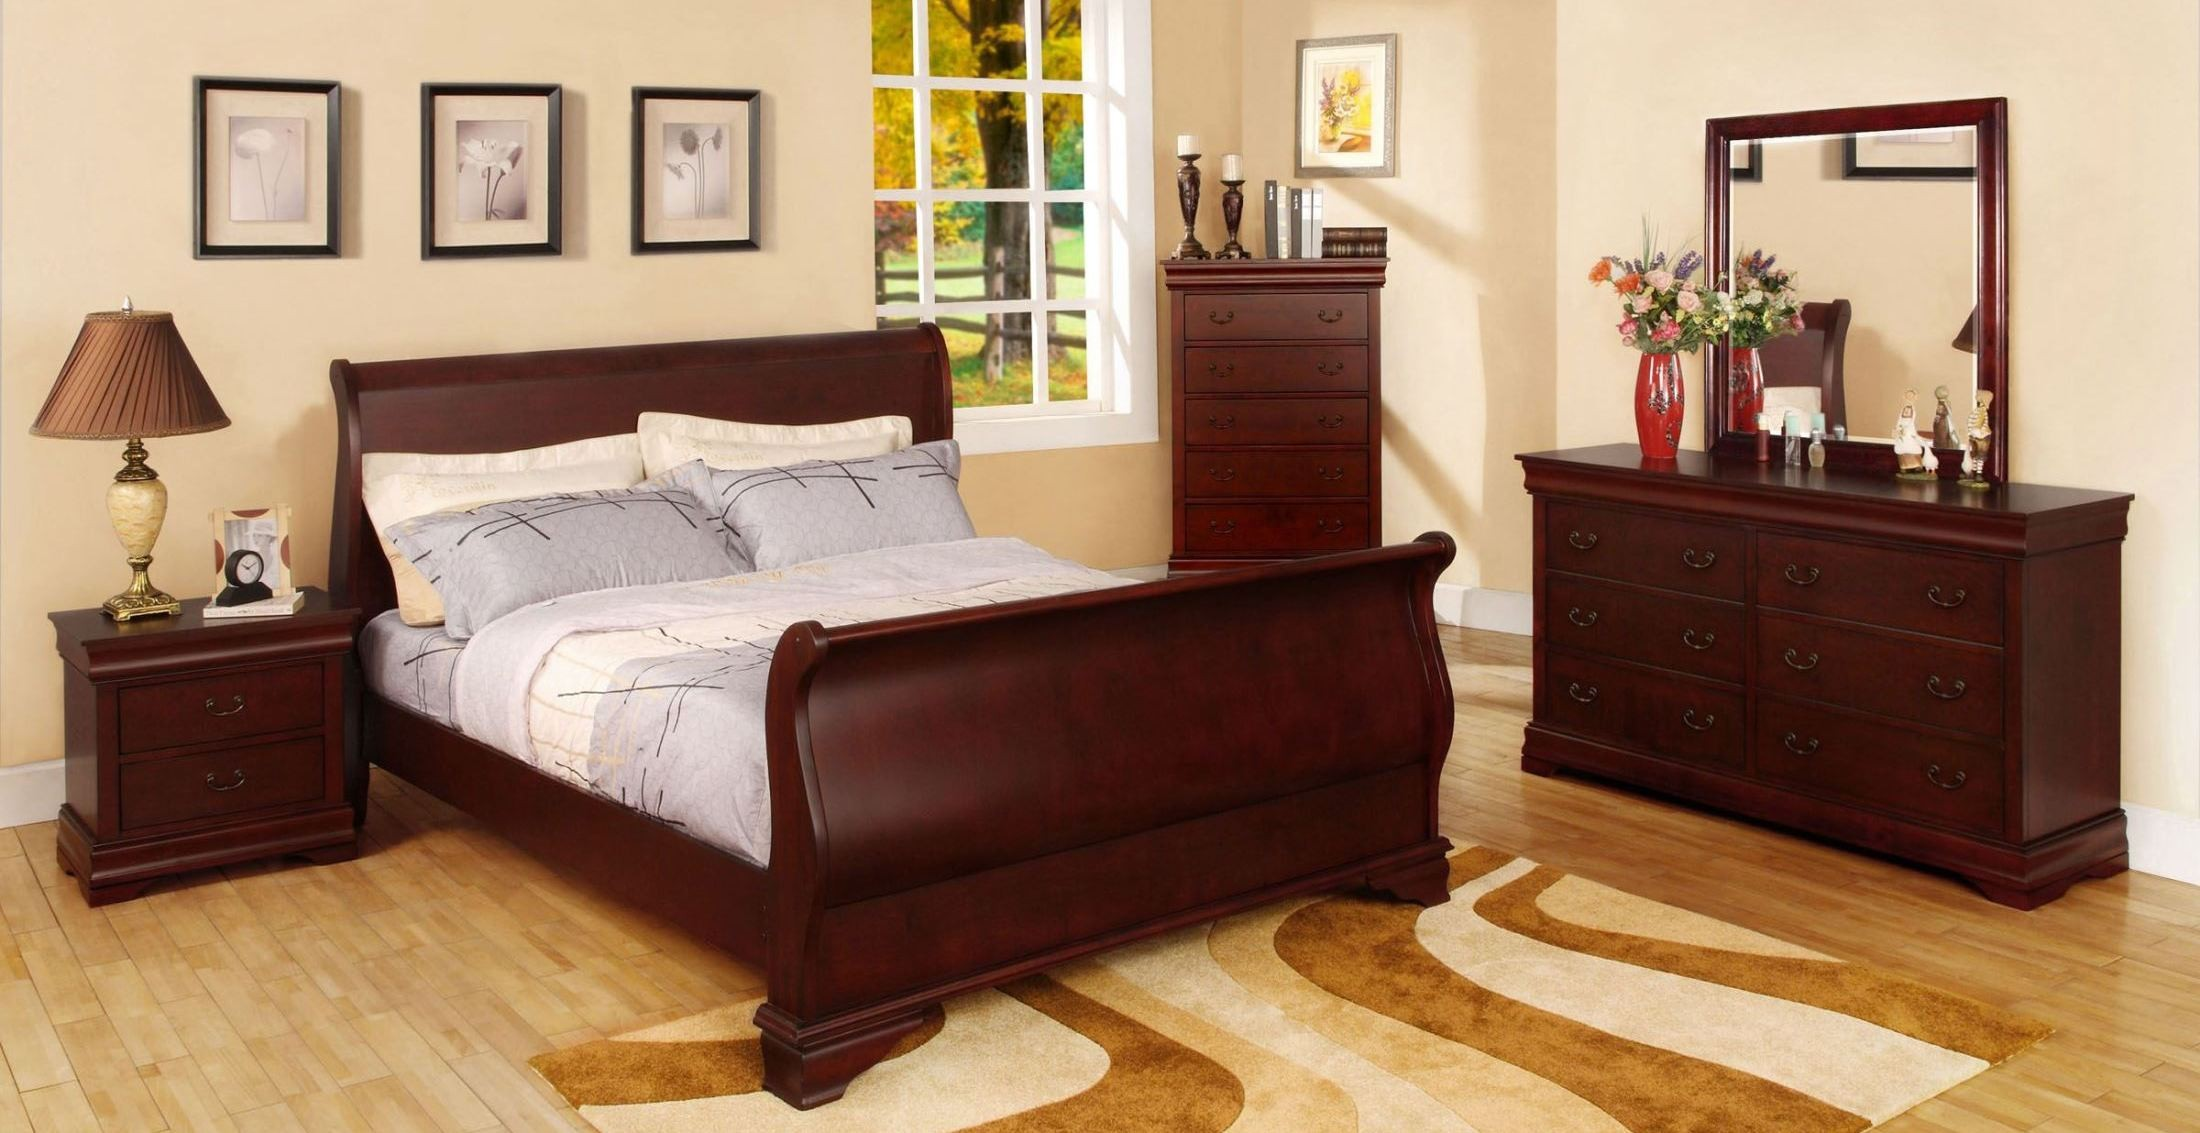 Laurelle Cherry Sleigh Bedroom Set from Furniture of America CM7815Q BED